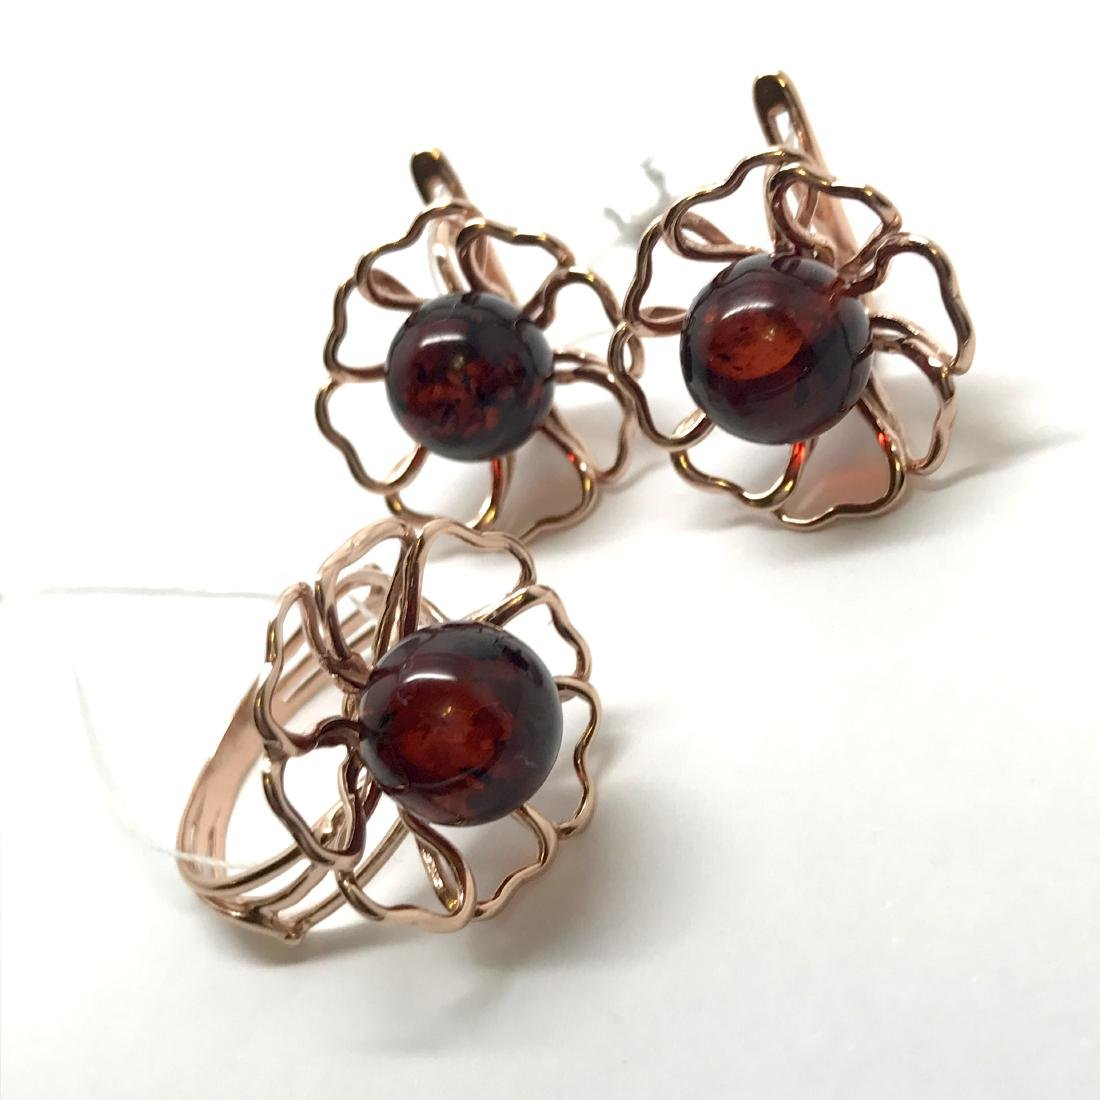 24K gold plated silver Baltic amber ring earrings set